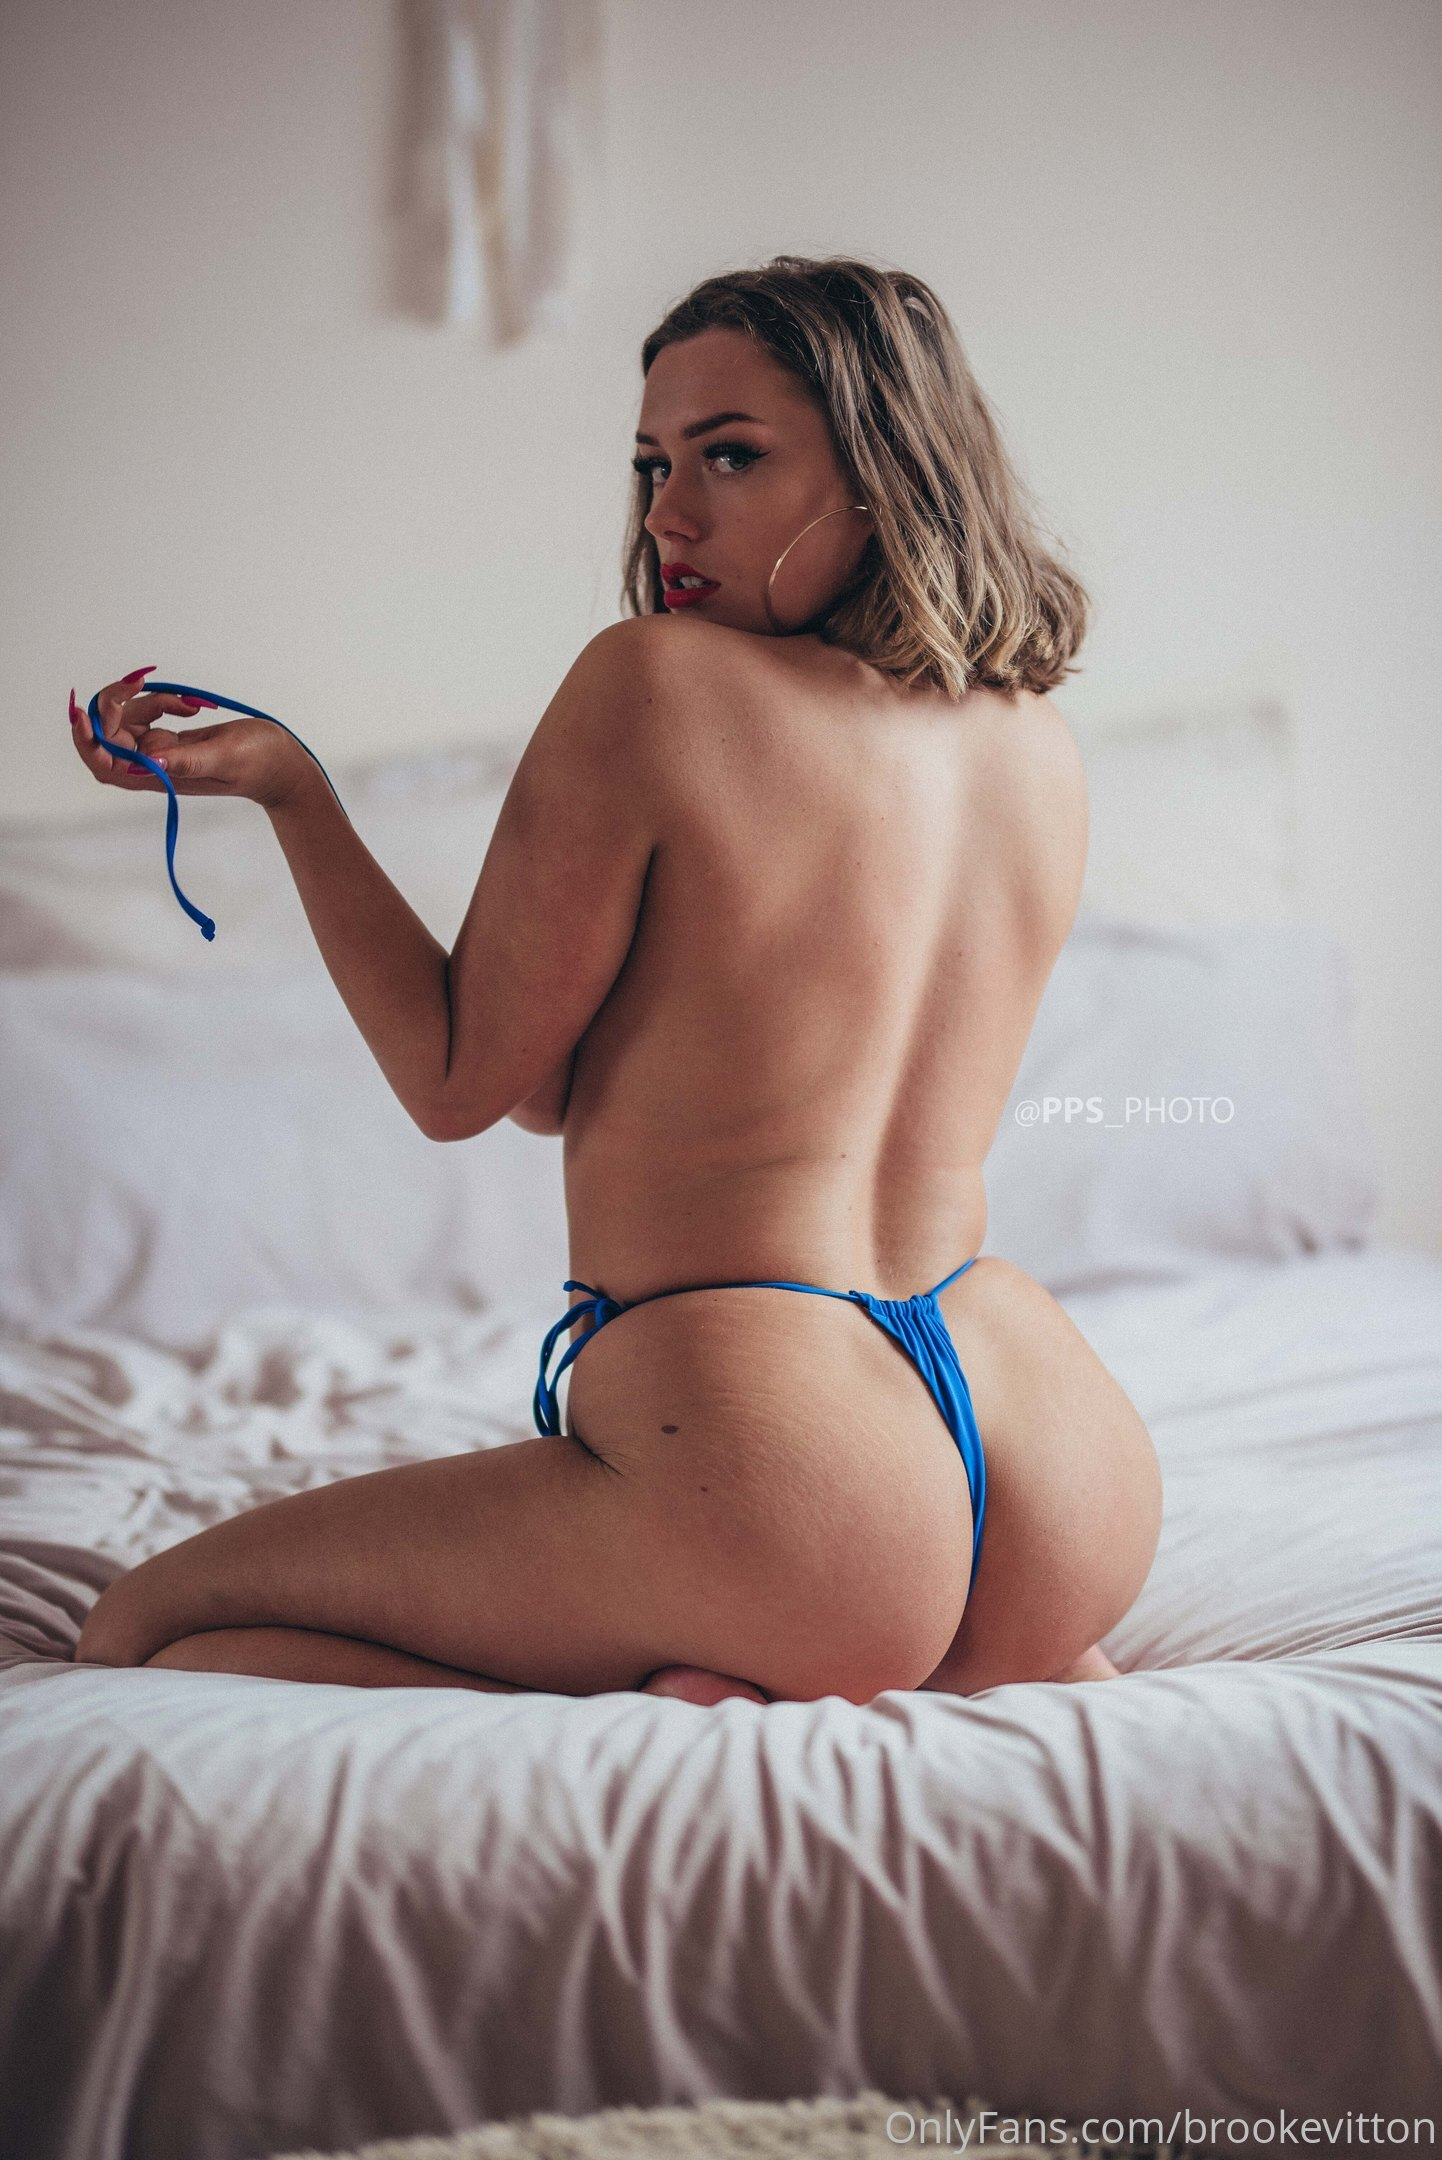 Avalon Hope, Avalonhopeofficial, Onlyfans 0049